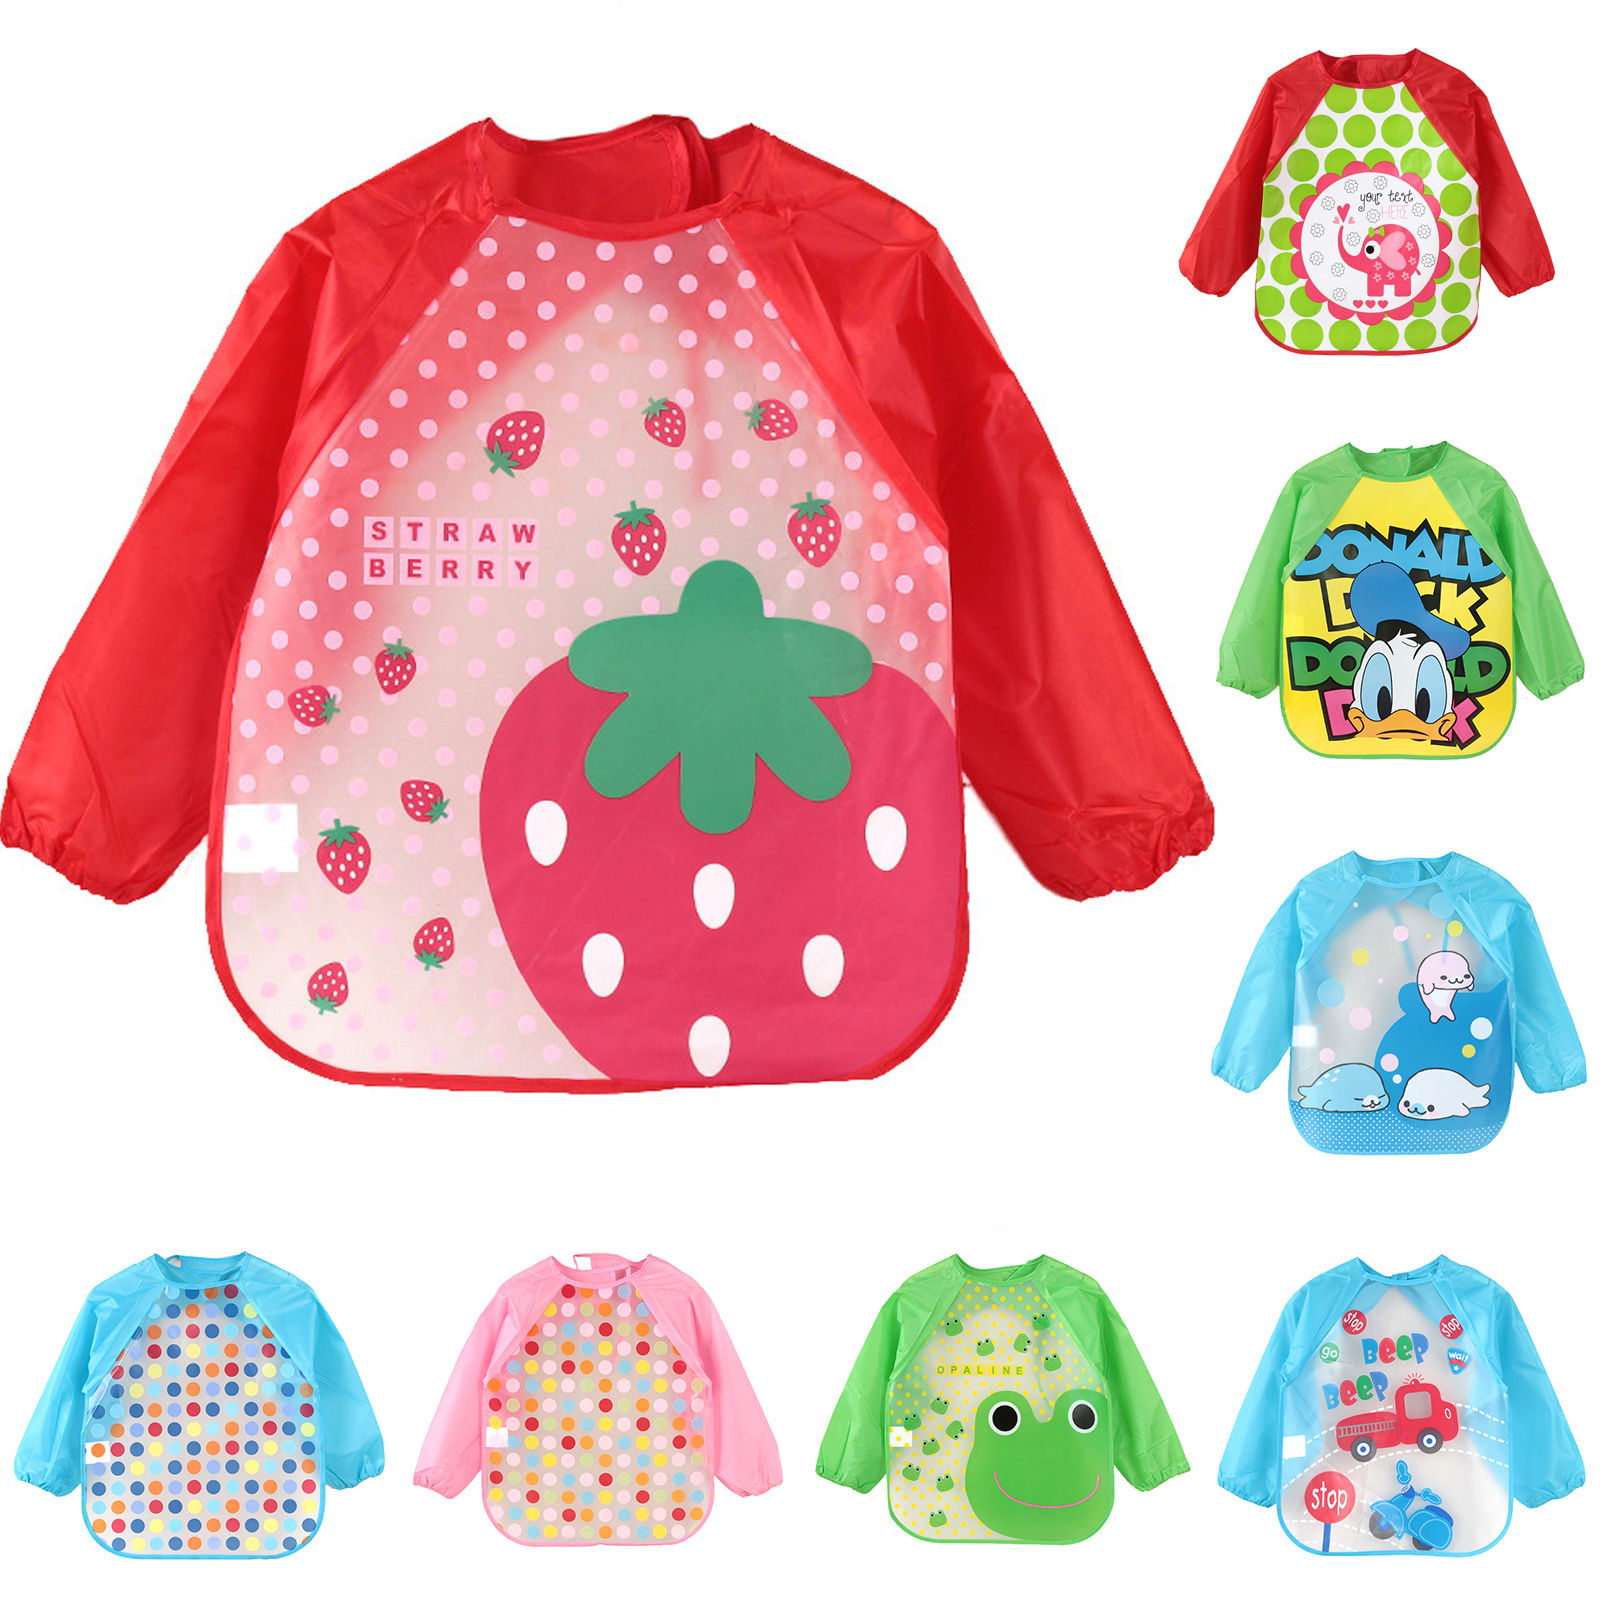 Cute Cartoon Animals Baby Bibs Waterproof Colorful Children Bib Full Sleeve Bibs Children Apron Long Sleeve Feeding Bibs(China)